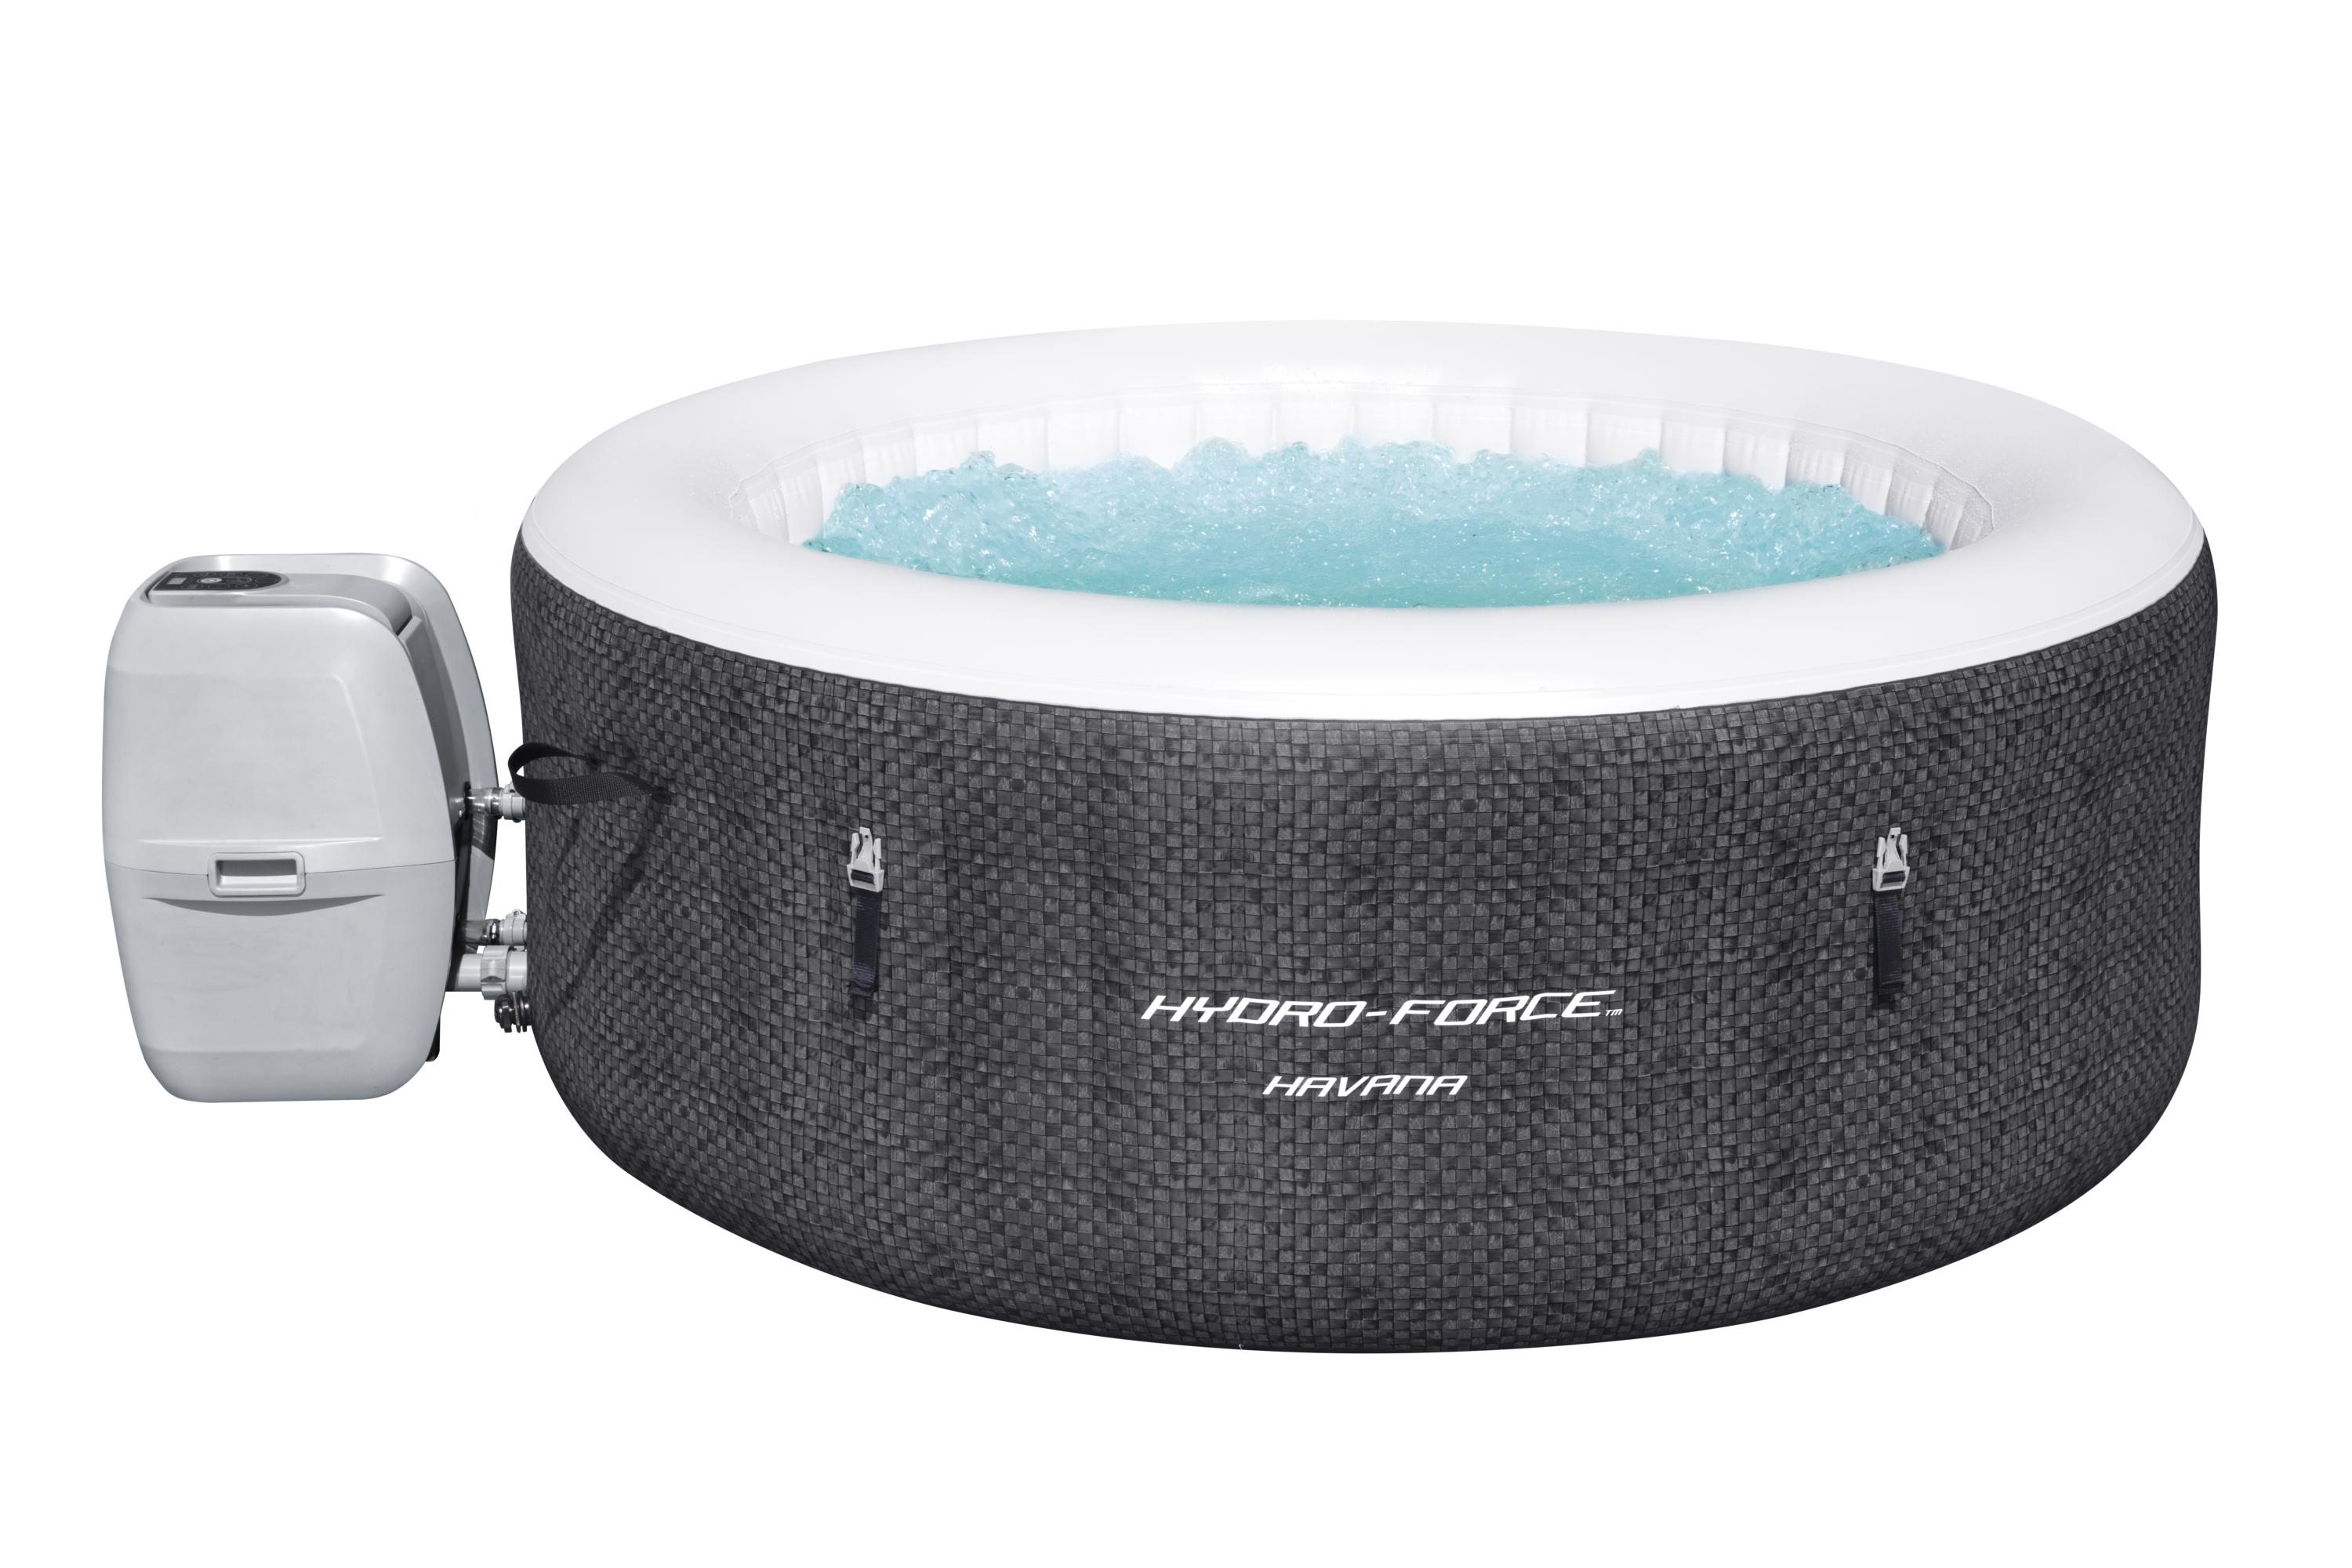 Hydro-Force Havana 2-4 Person Inflatable Hot Tub Spa